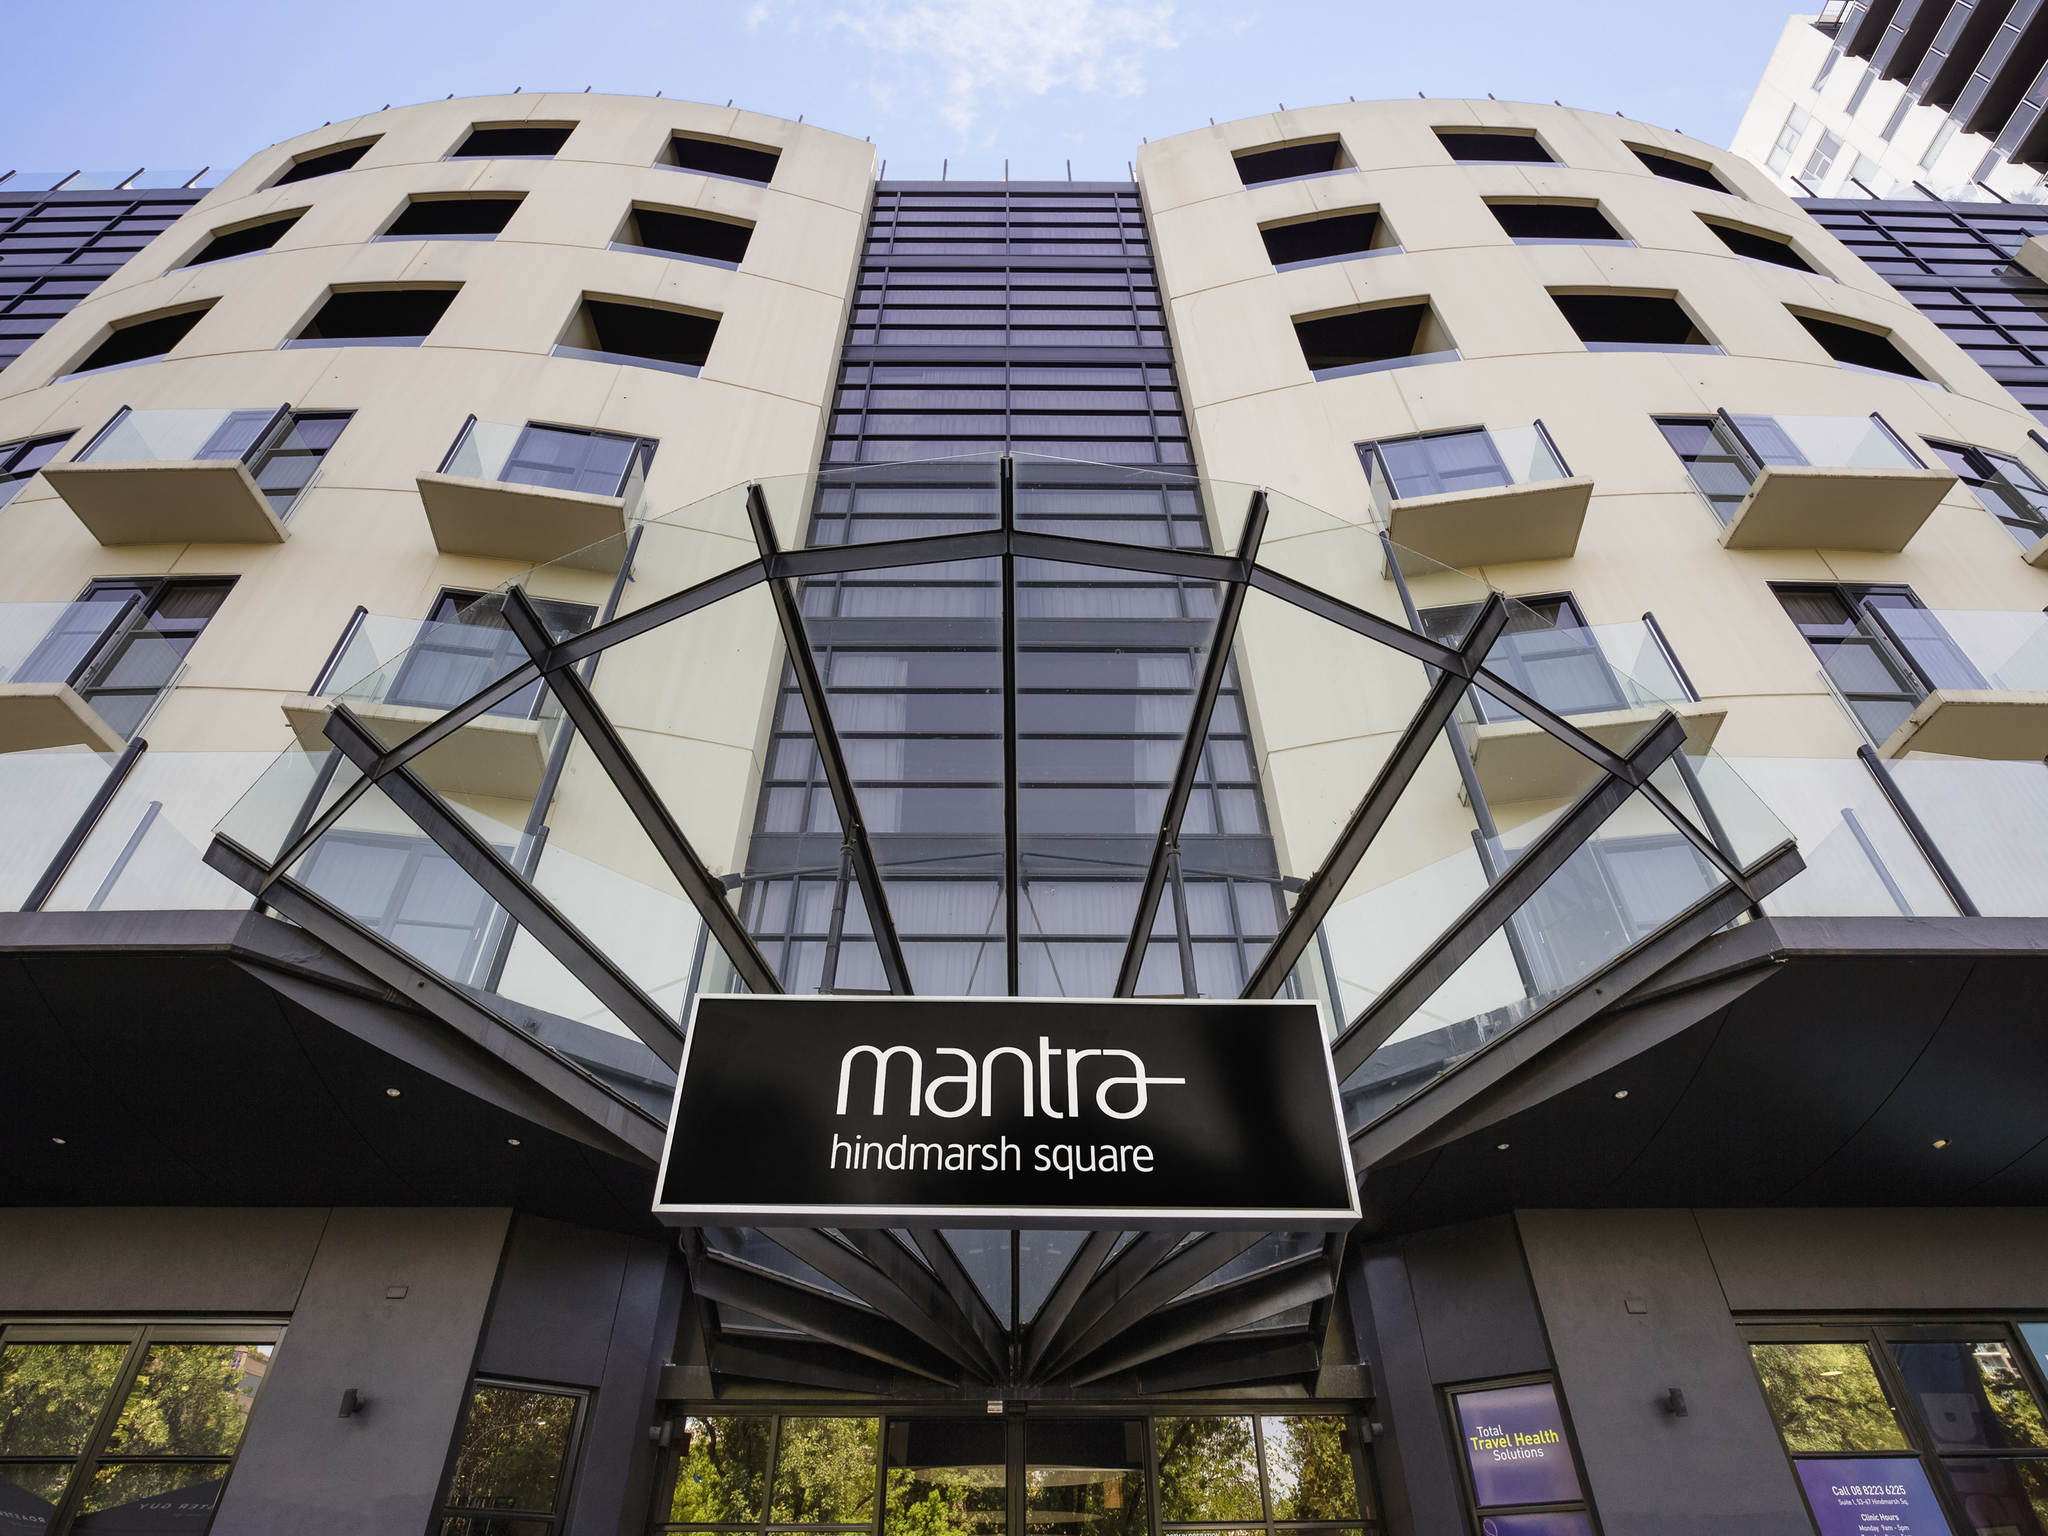 Hotel – Mantra Hindmarsh Square